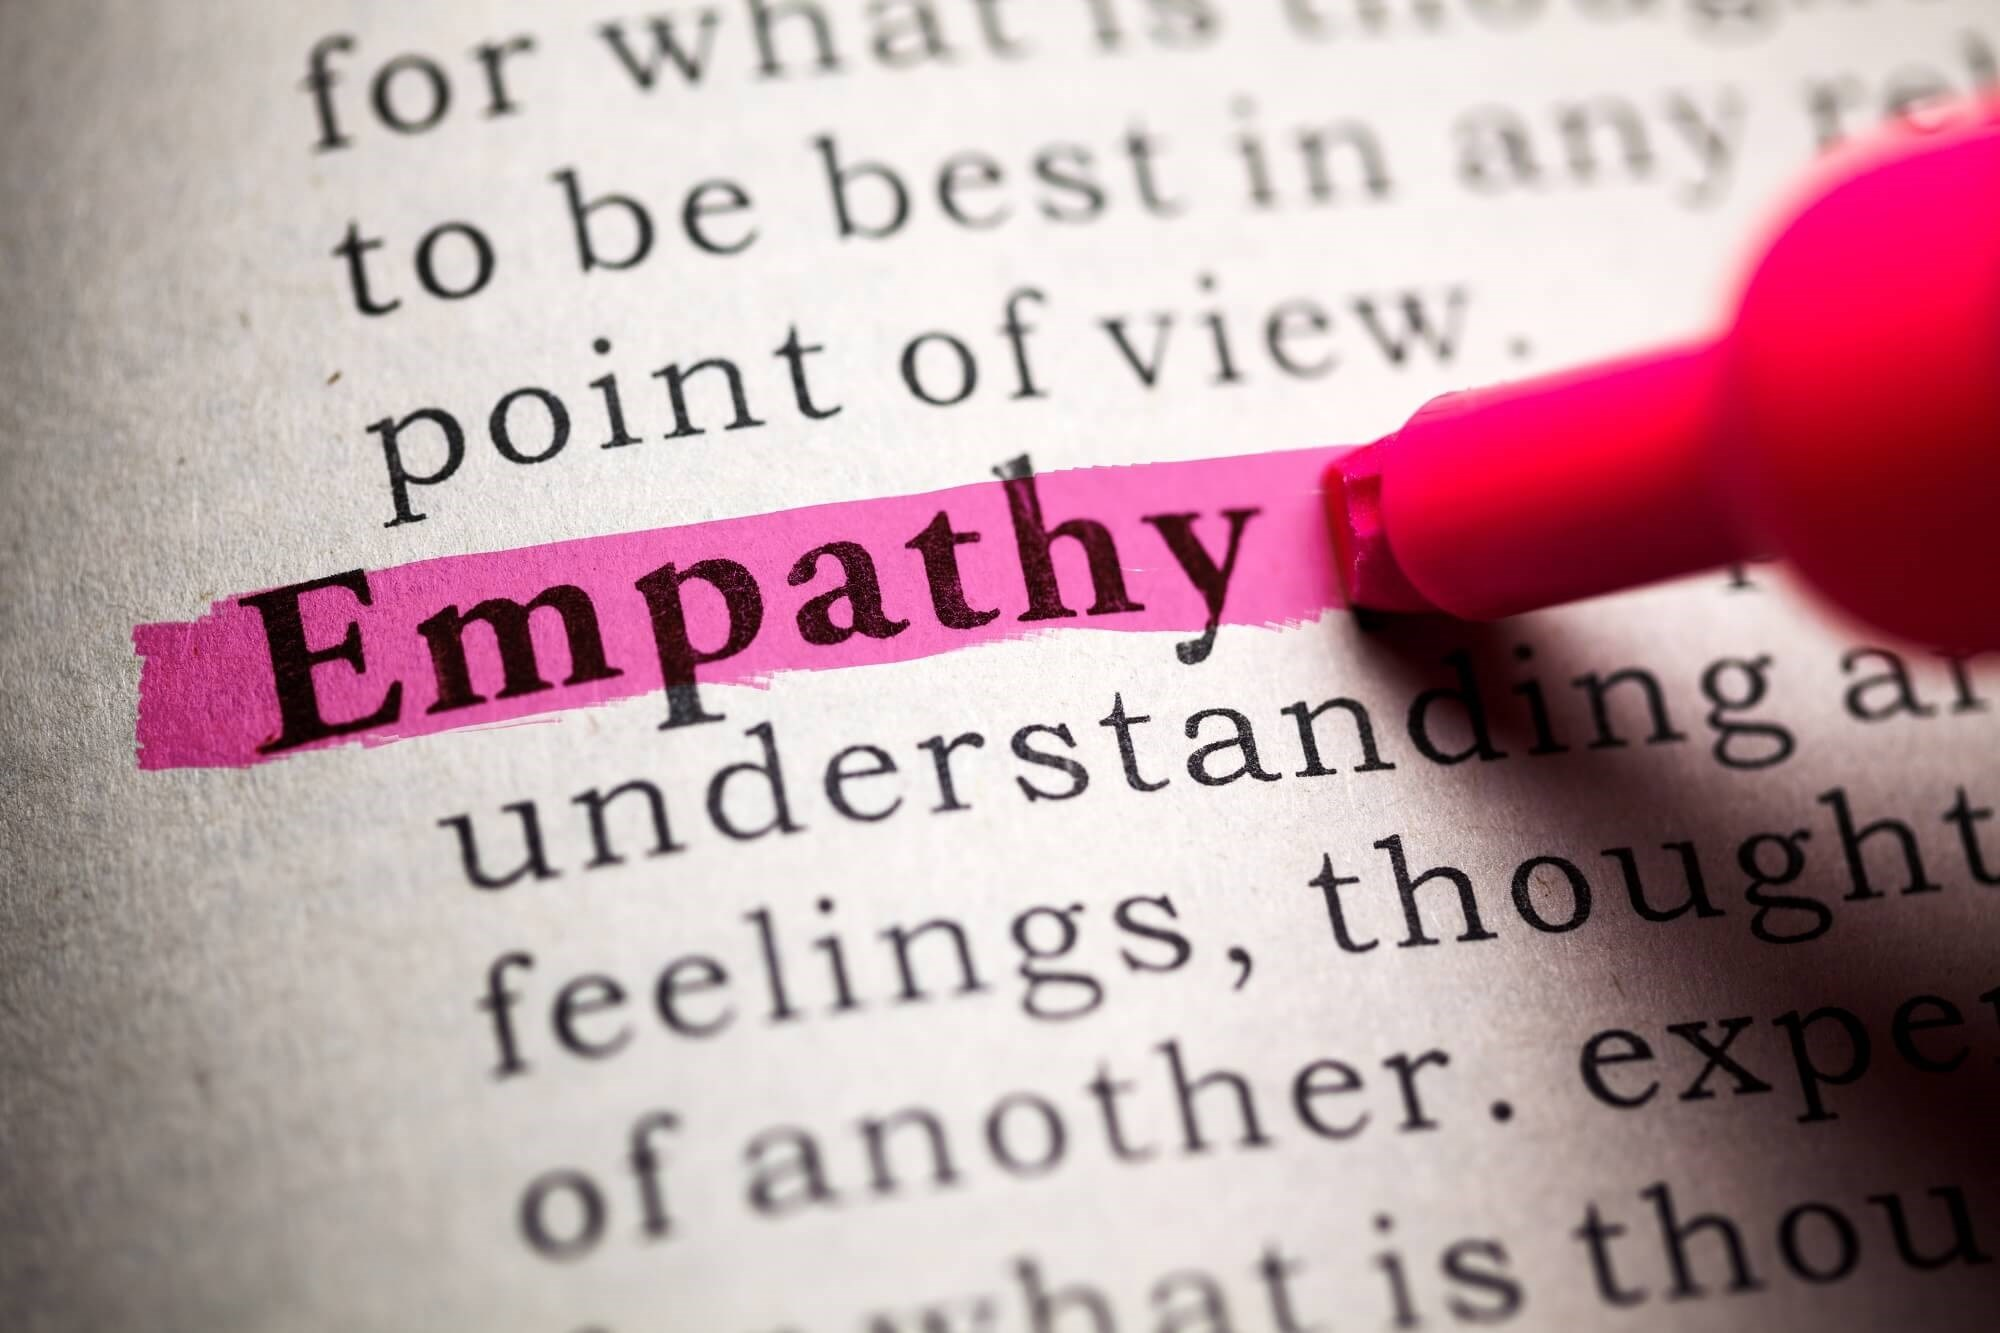 The researchers hypothesize that empathy induction activities could increase prosocial behavior among violent offenders.